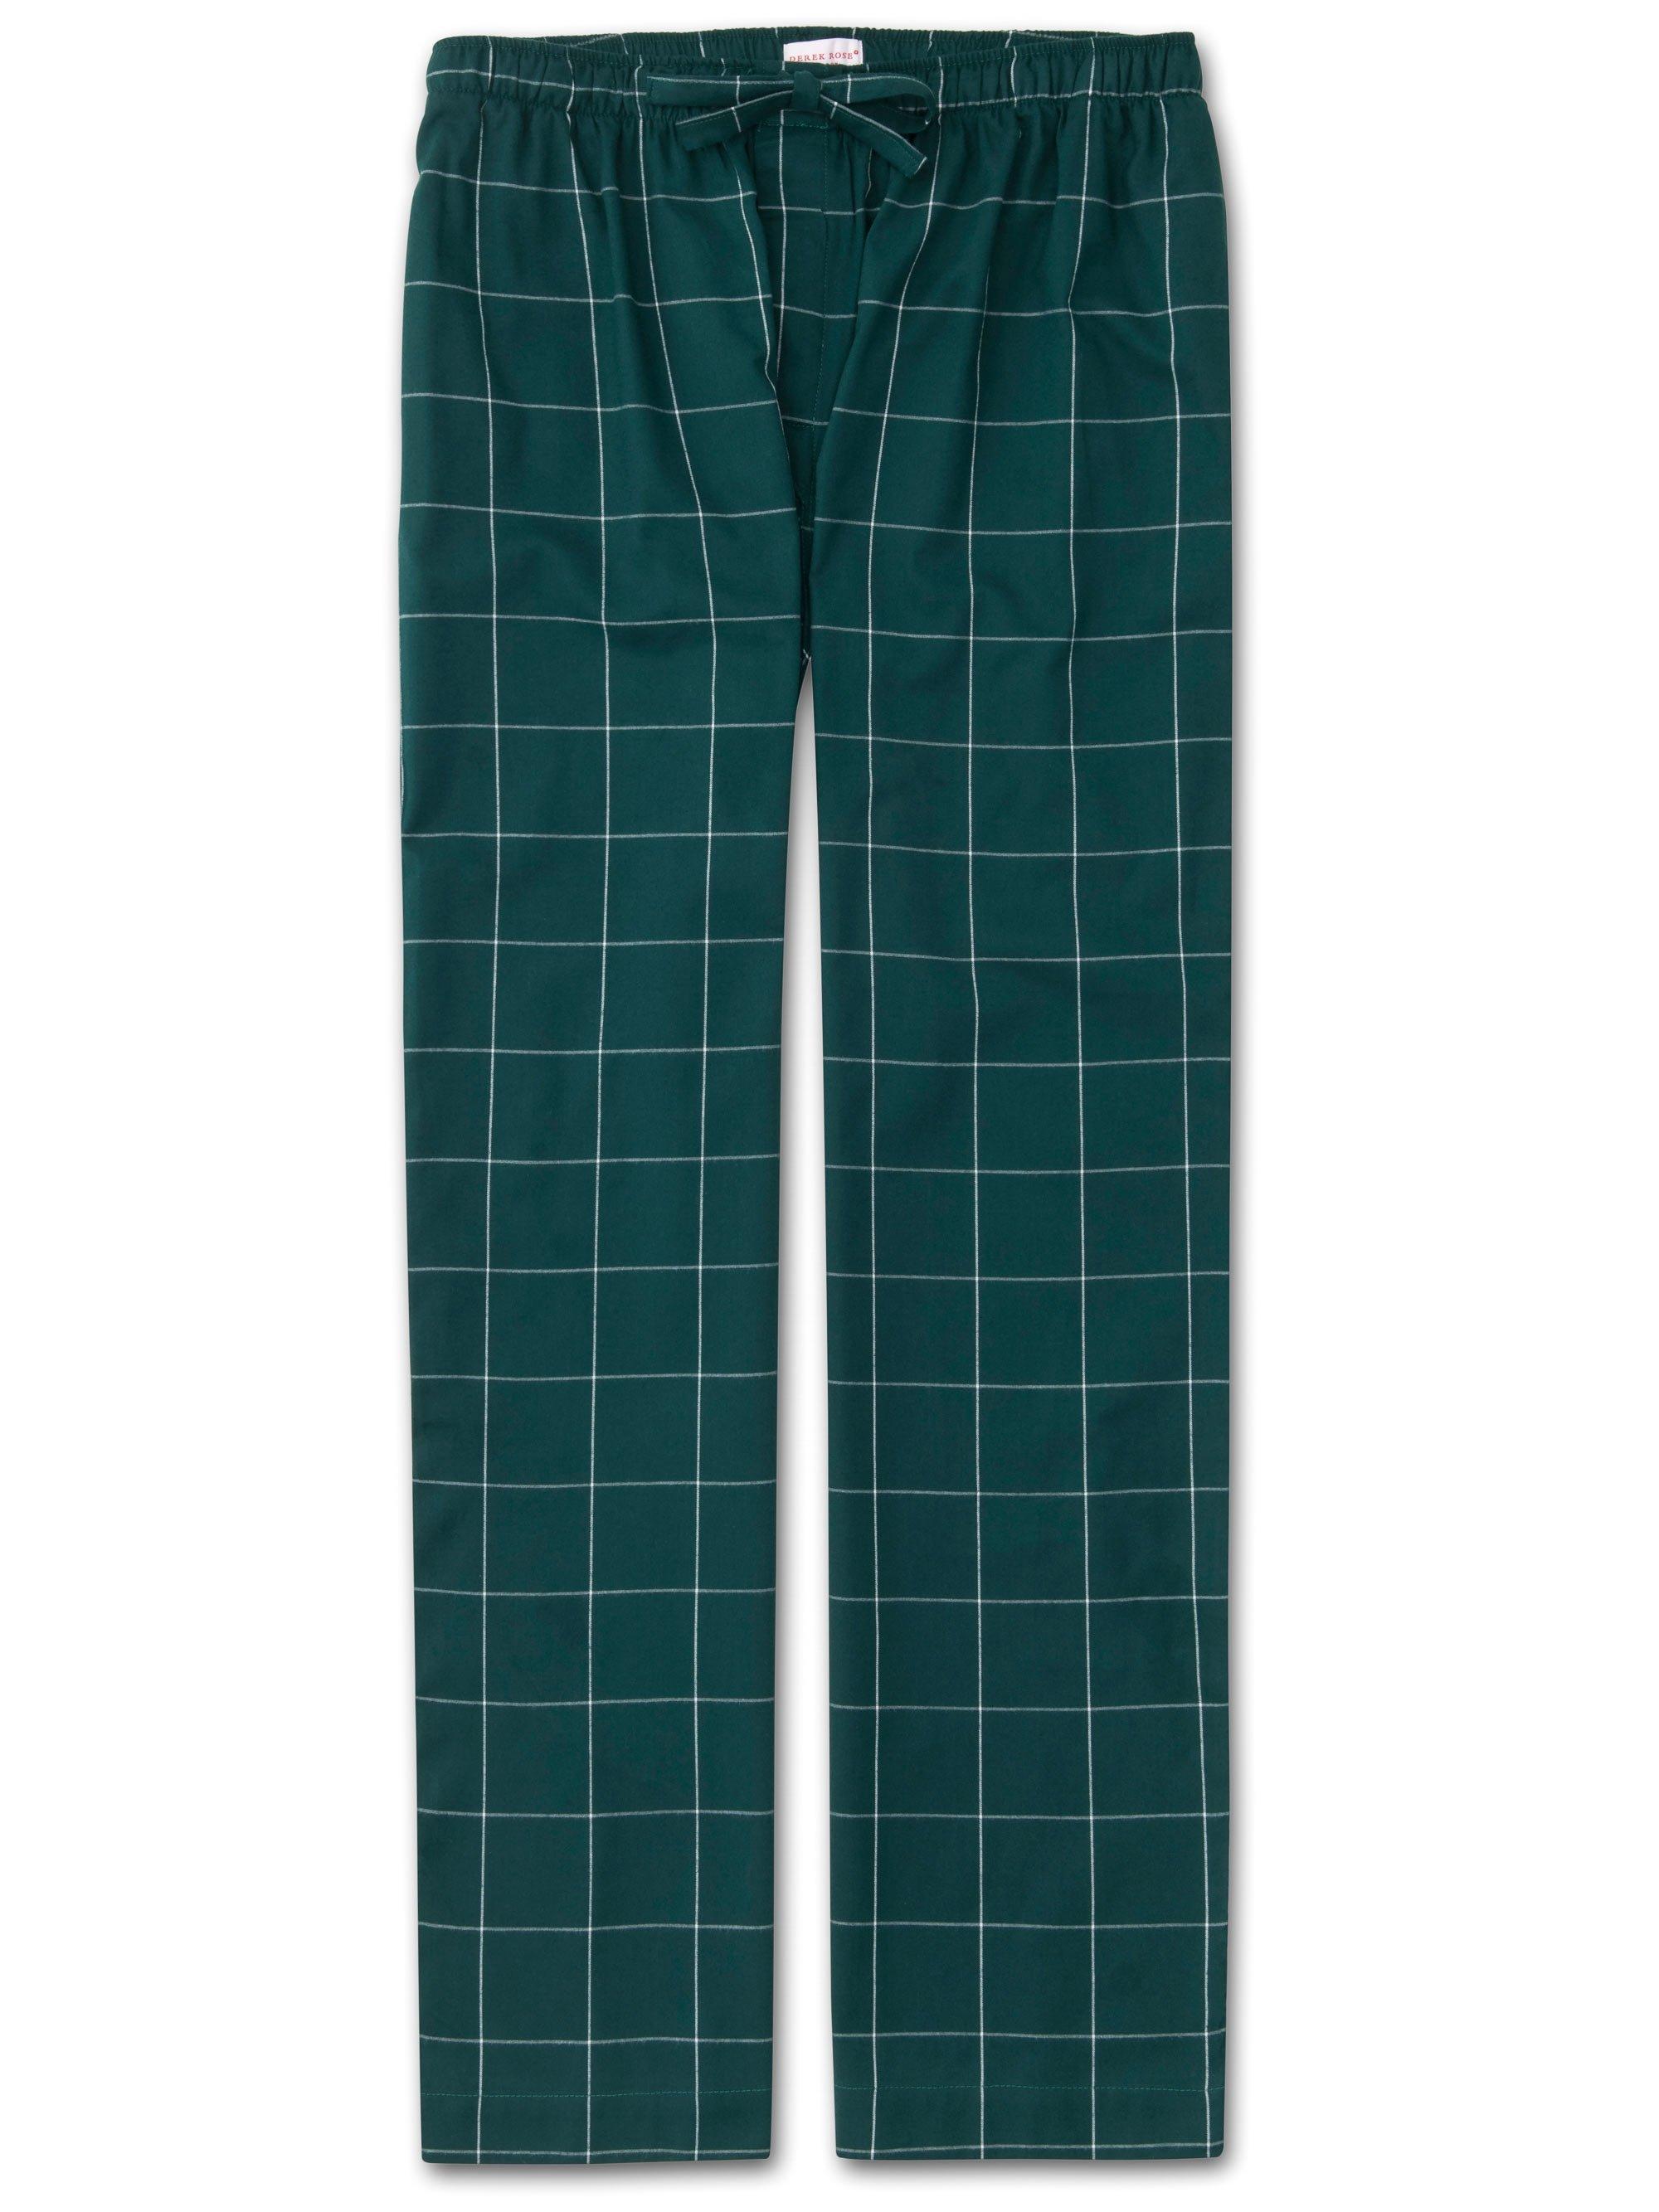 Men's Lounge Trousers Ranga 39 Brushed Cotton Check Green